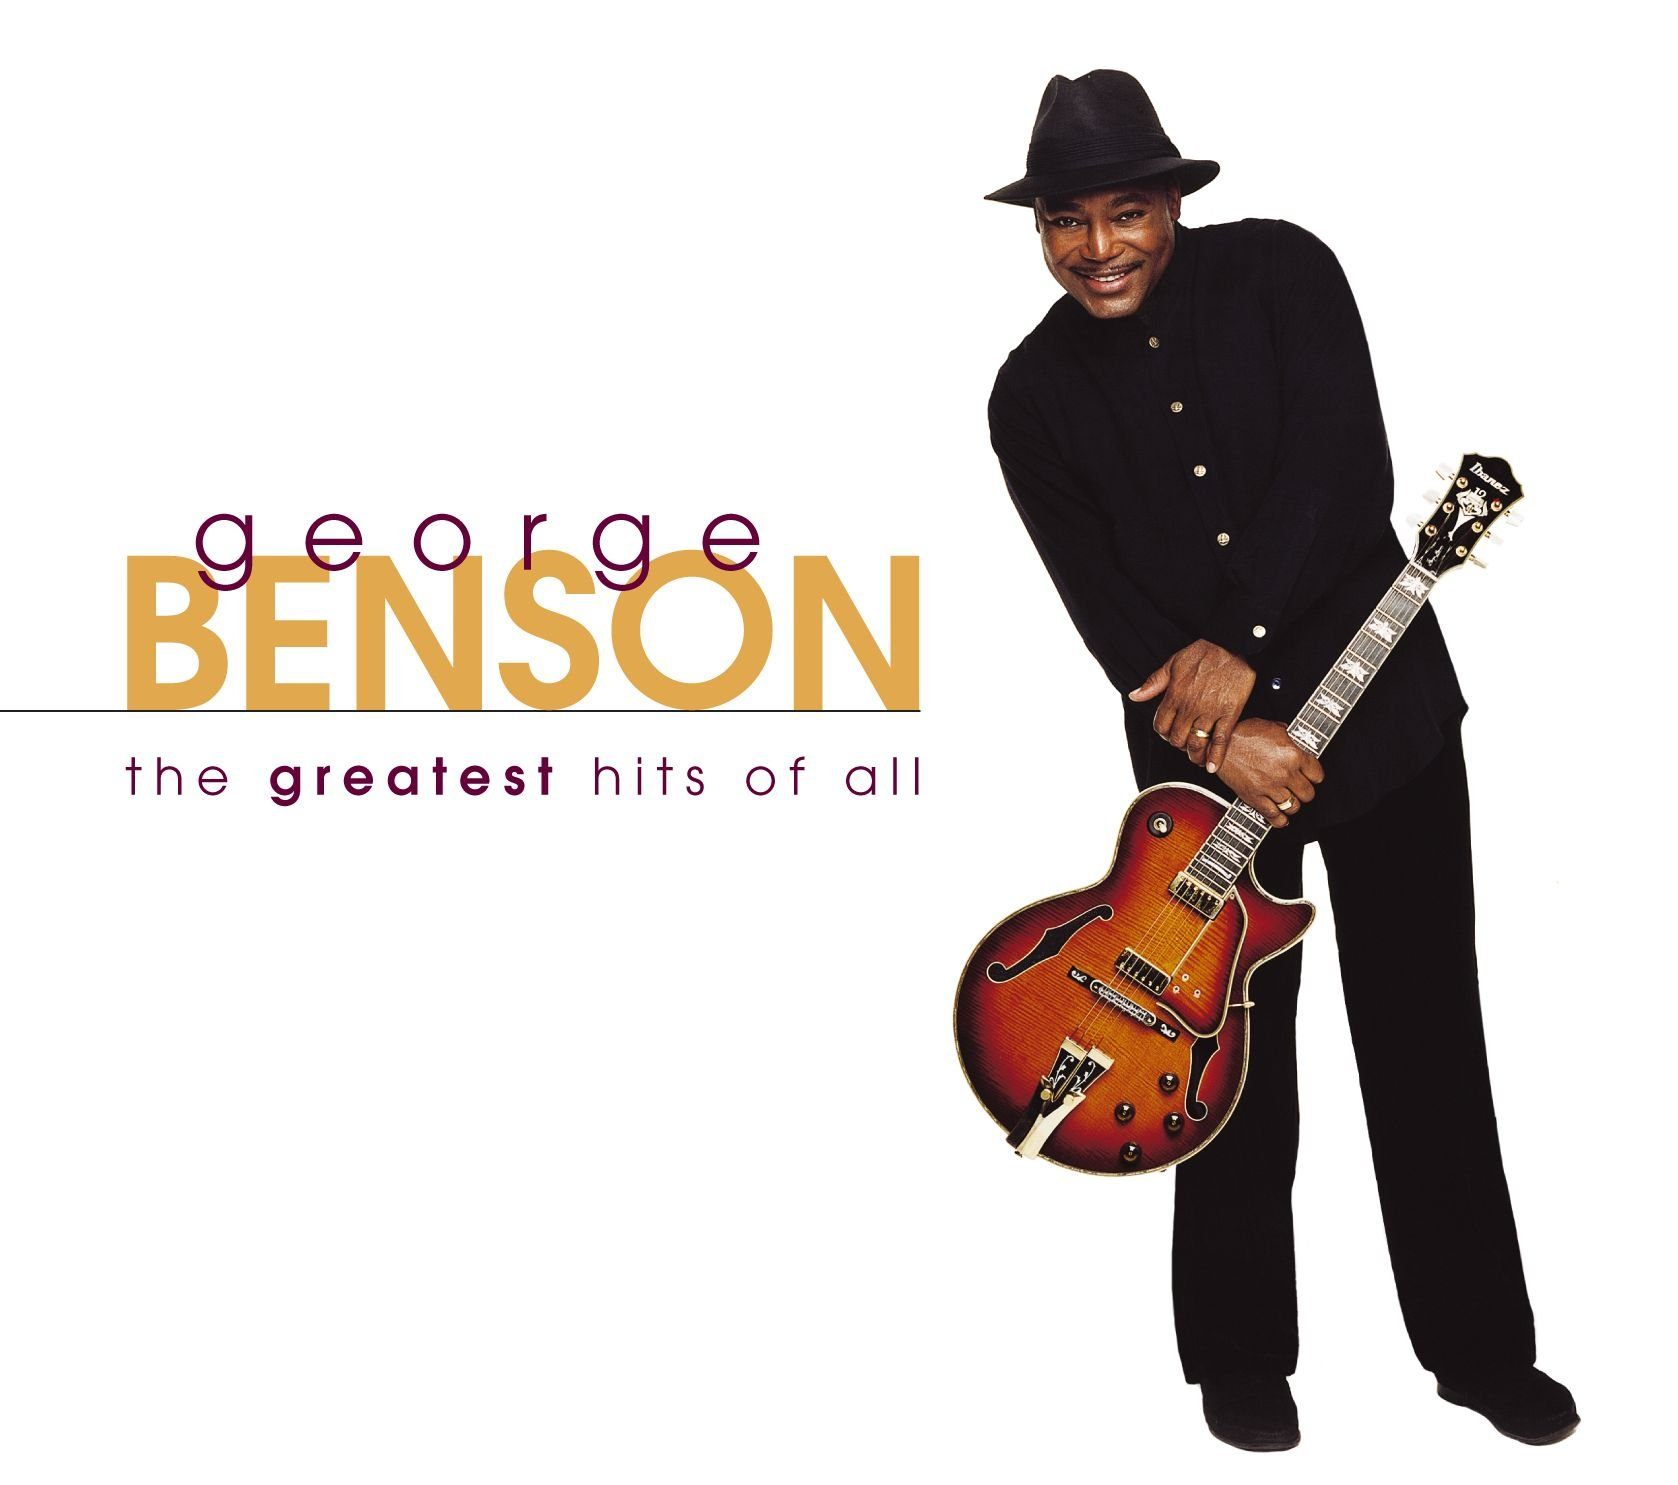 CD : George Benson - Greatest Hits Of All (Remastered)